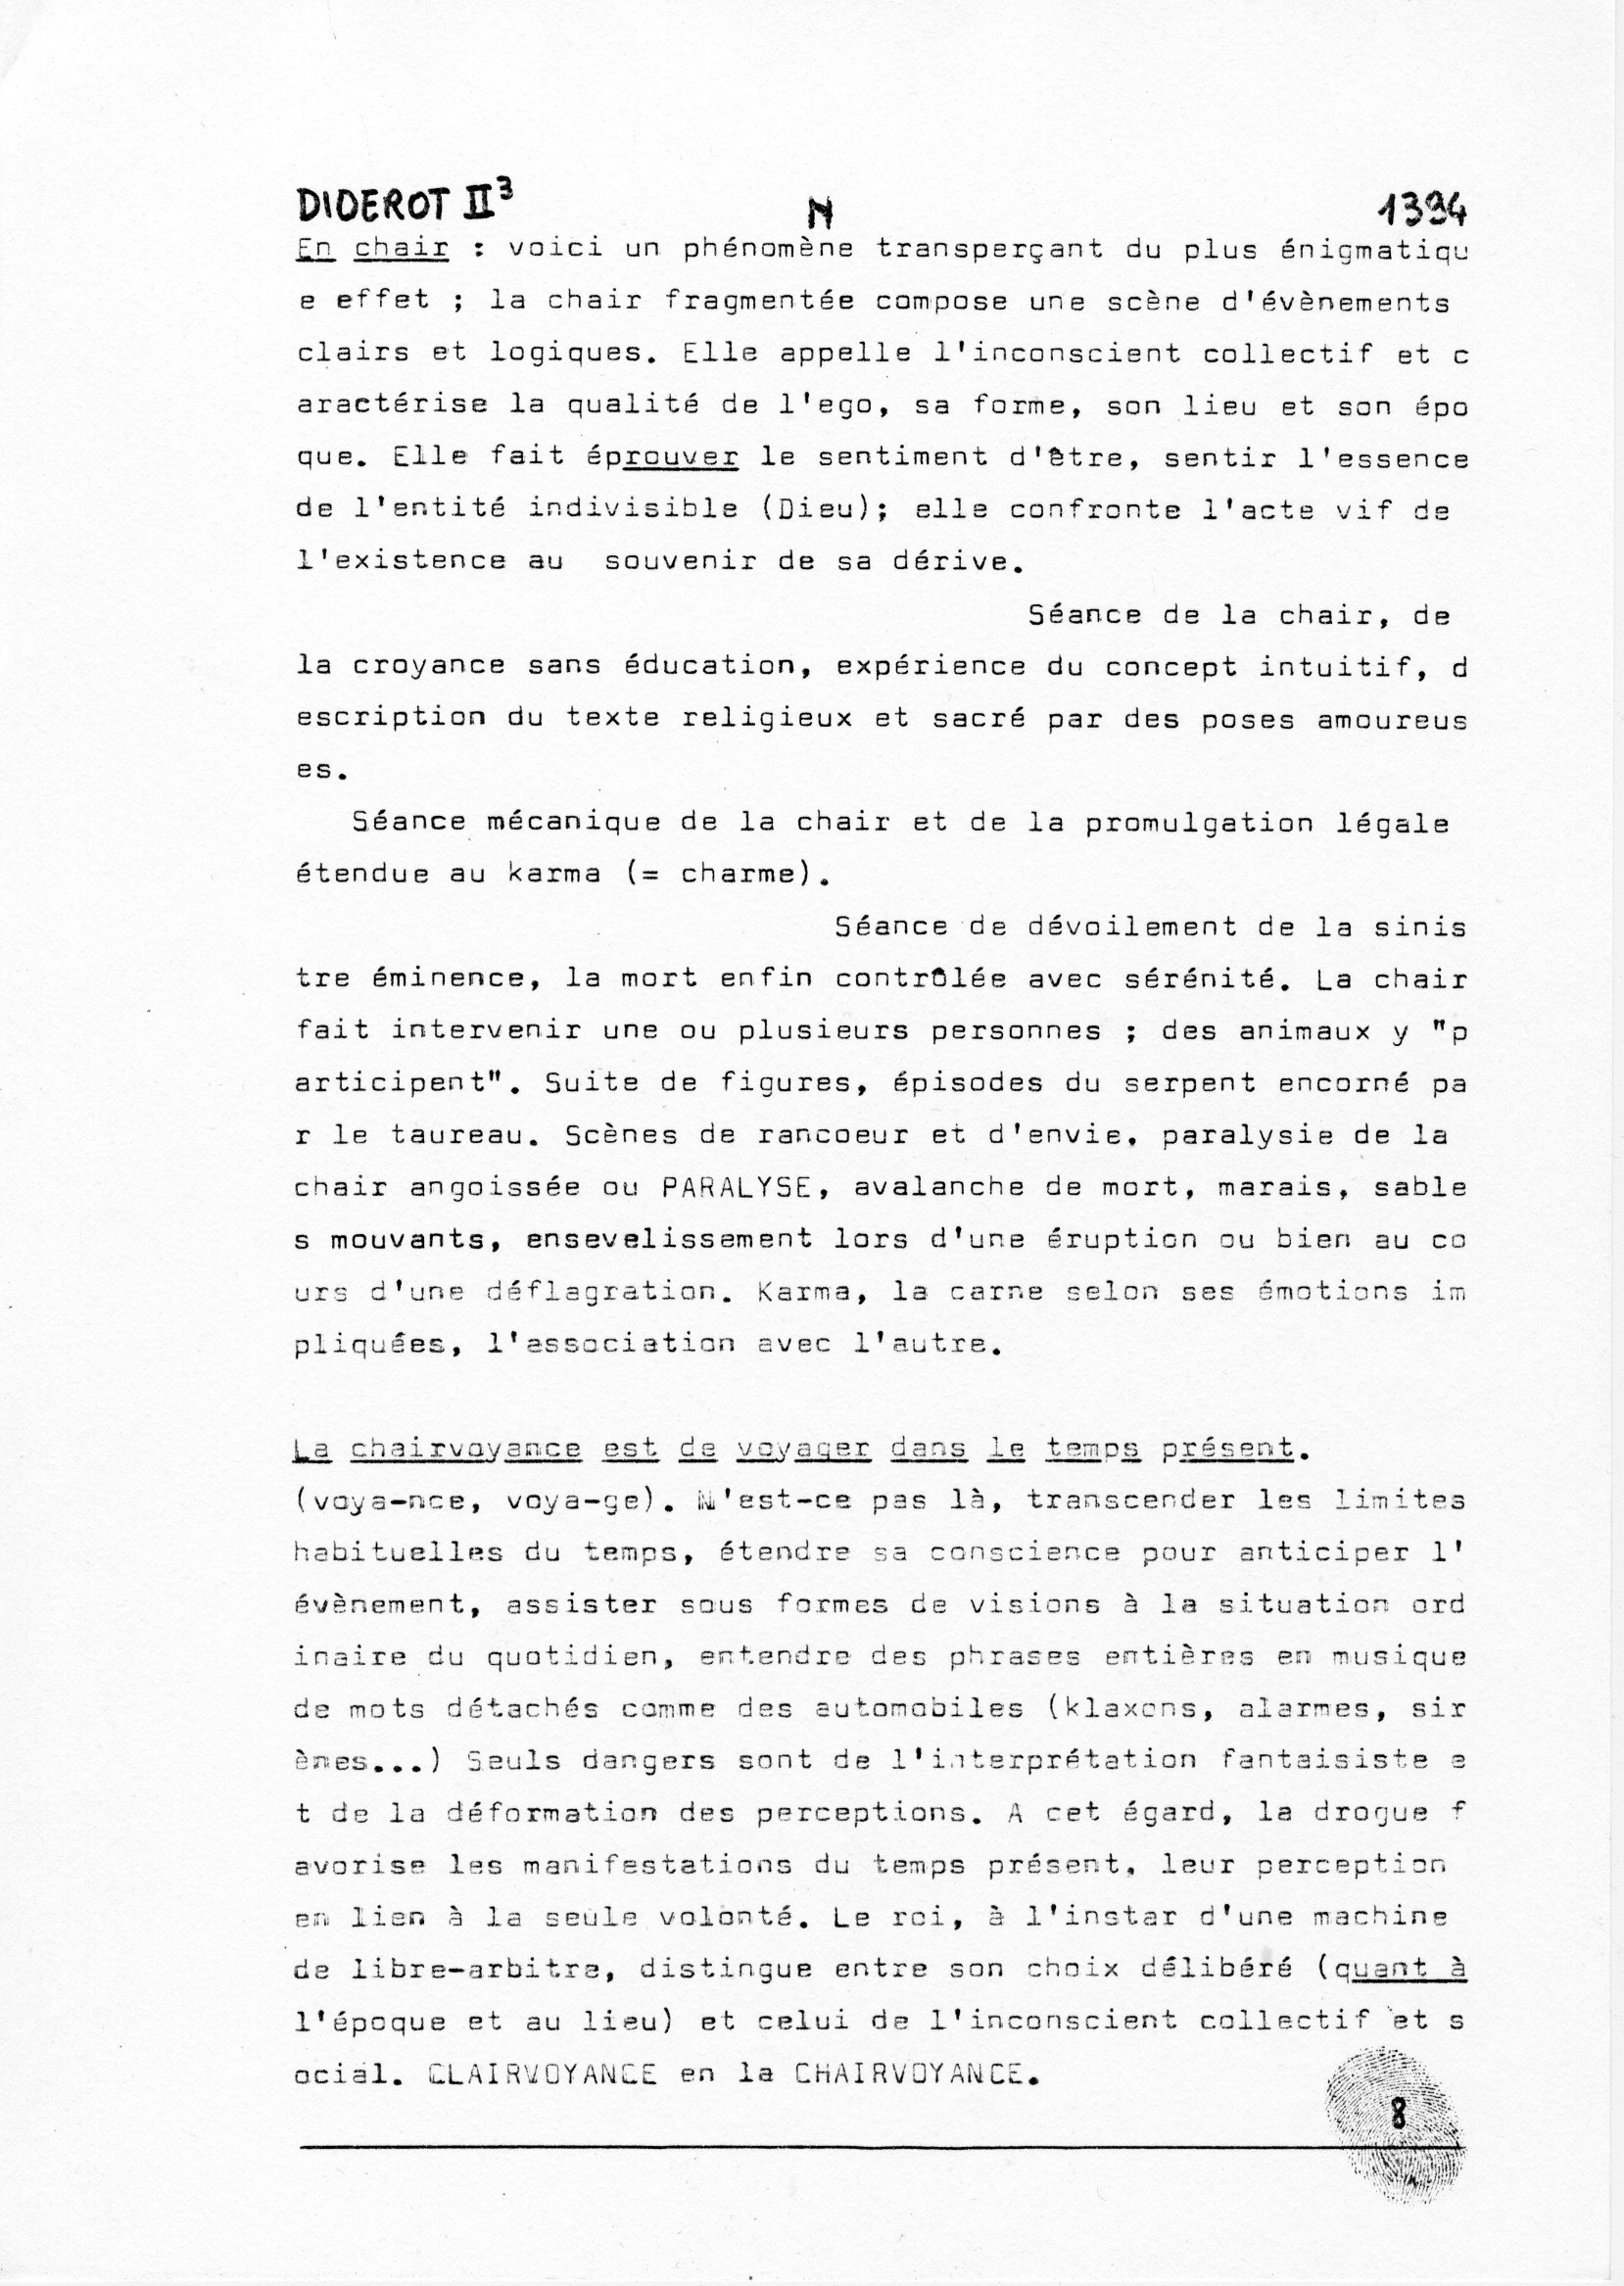 page 1394 Diderot II p3 N